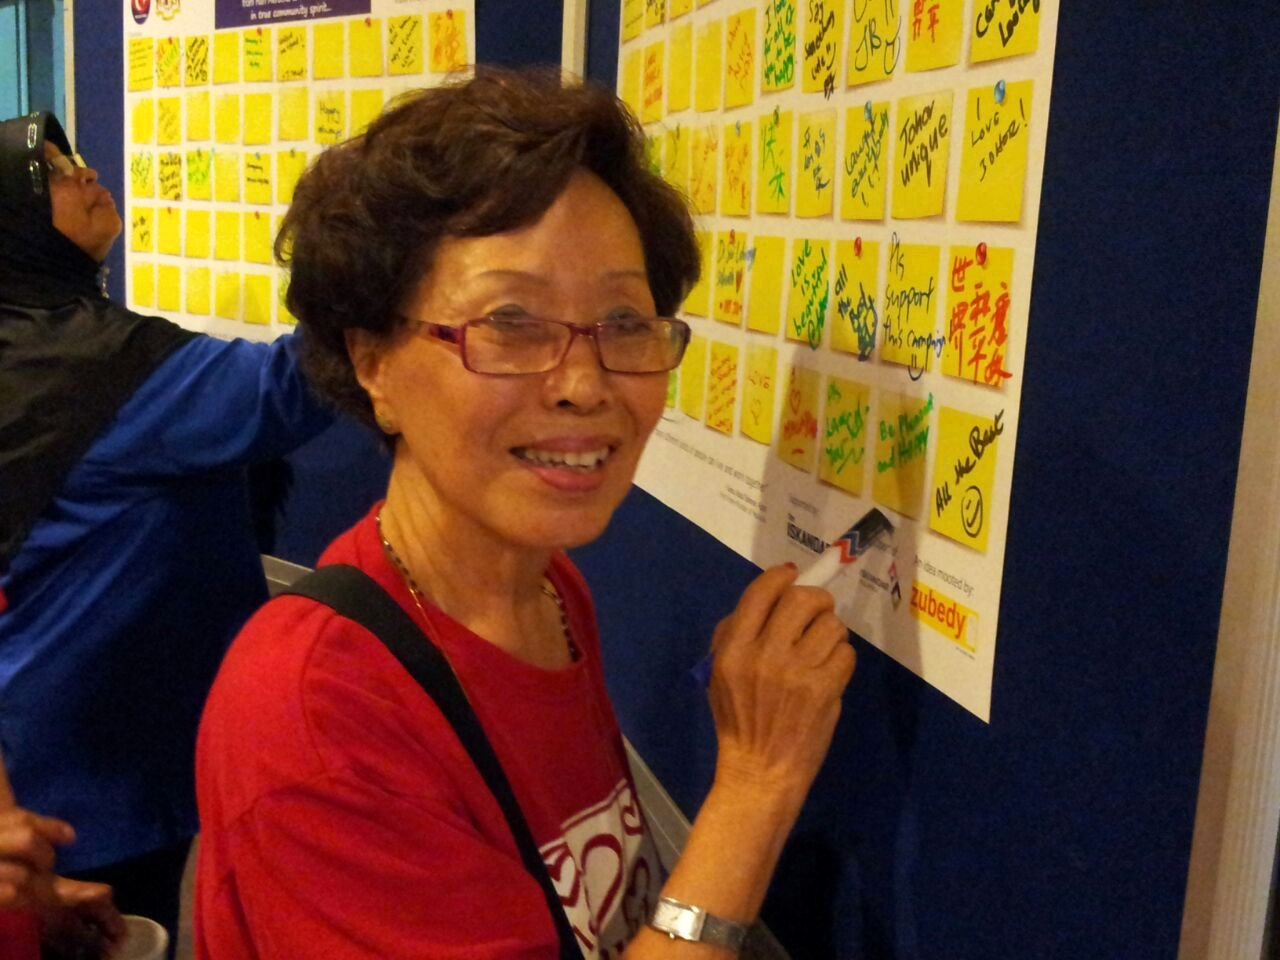 Mdm Theresa Ho writing on the chart for the campaign